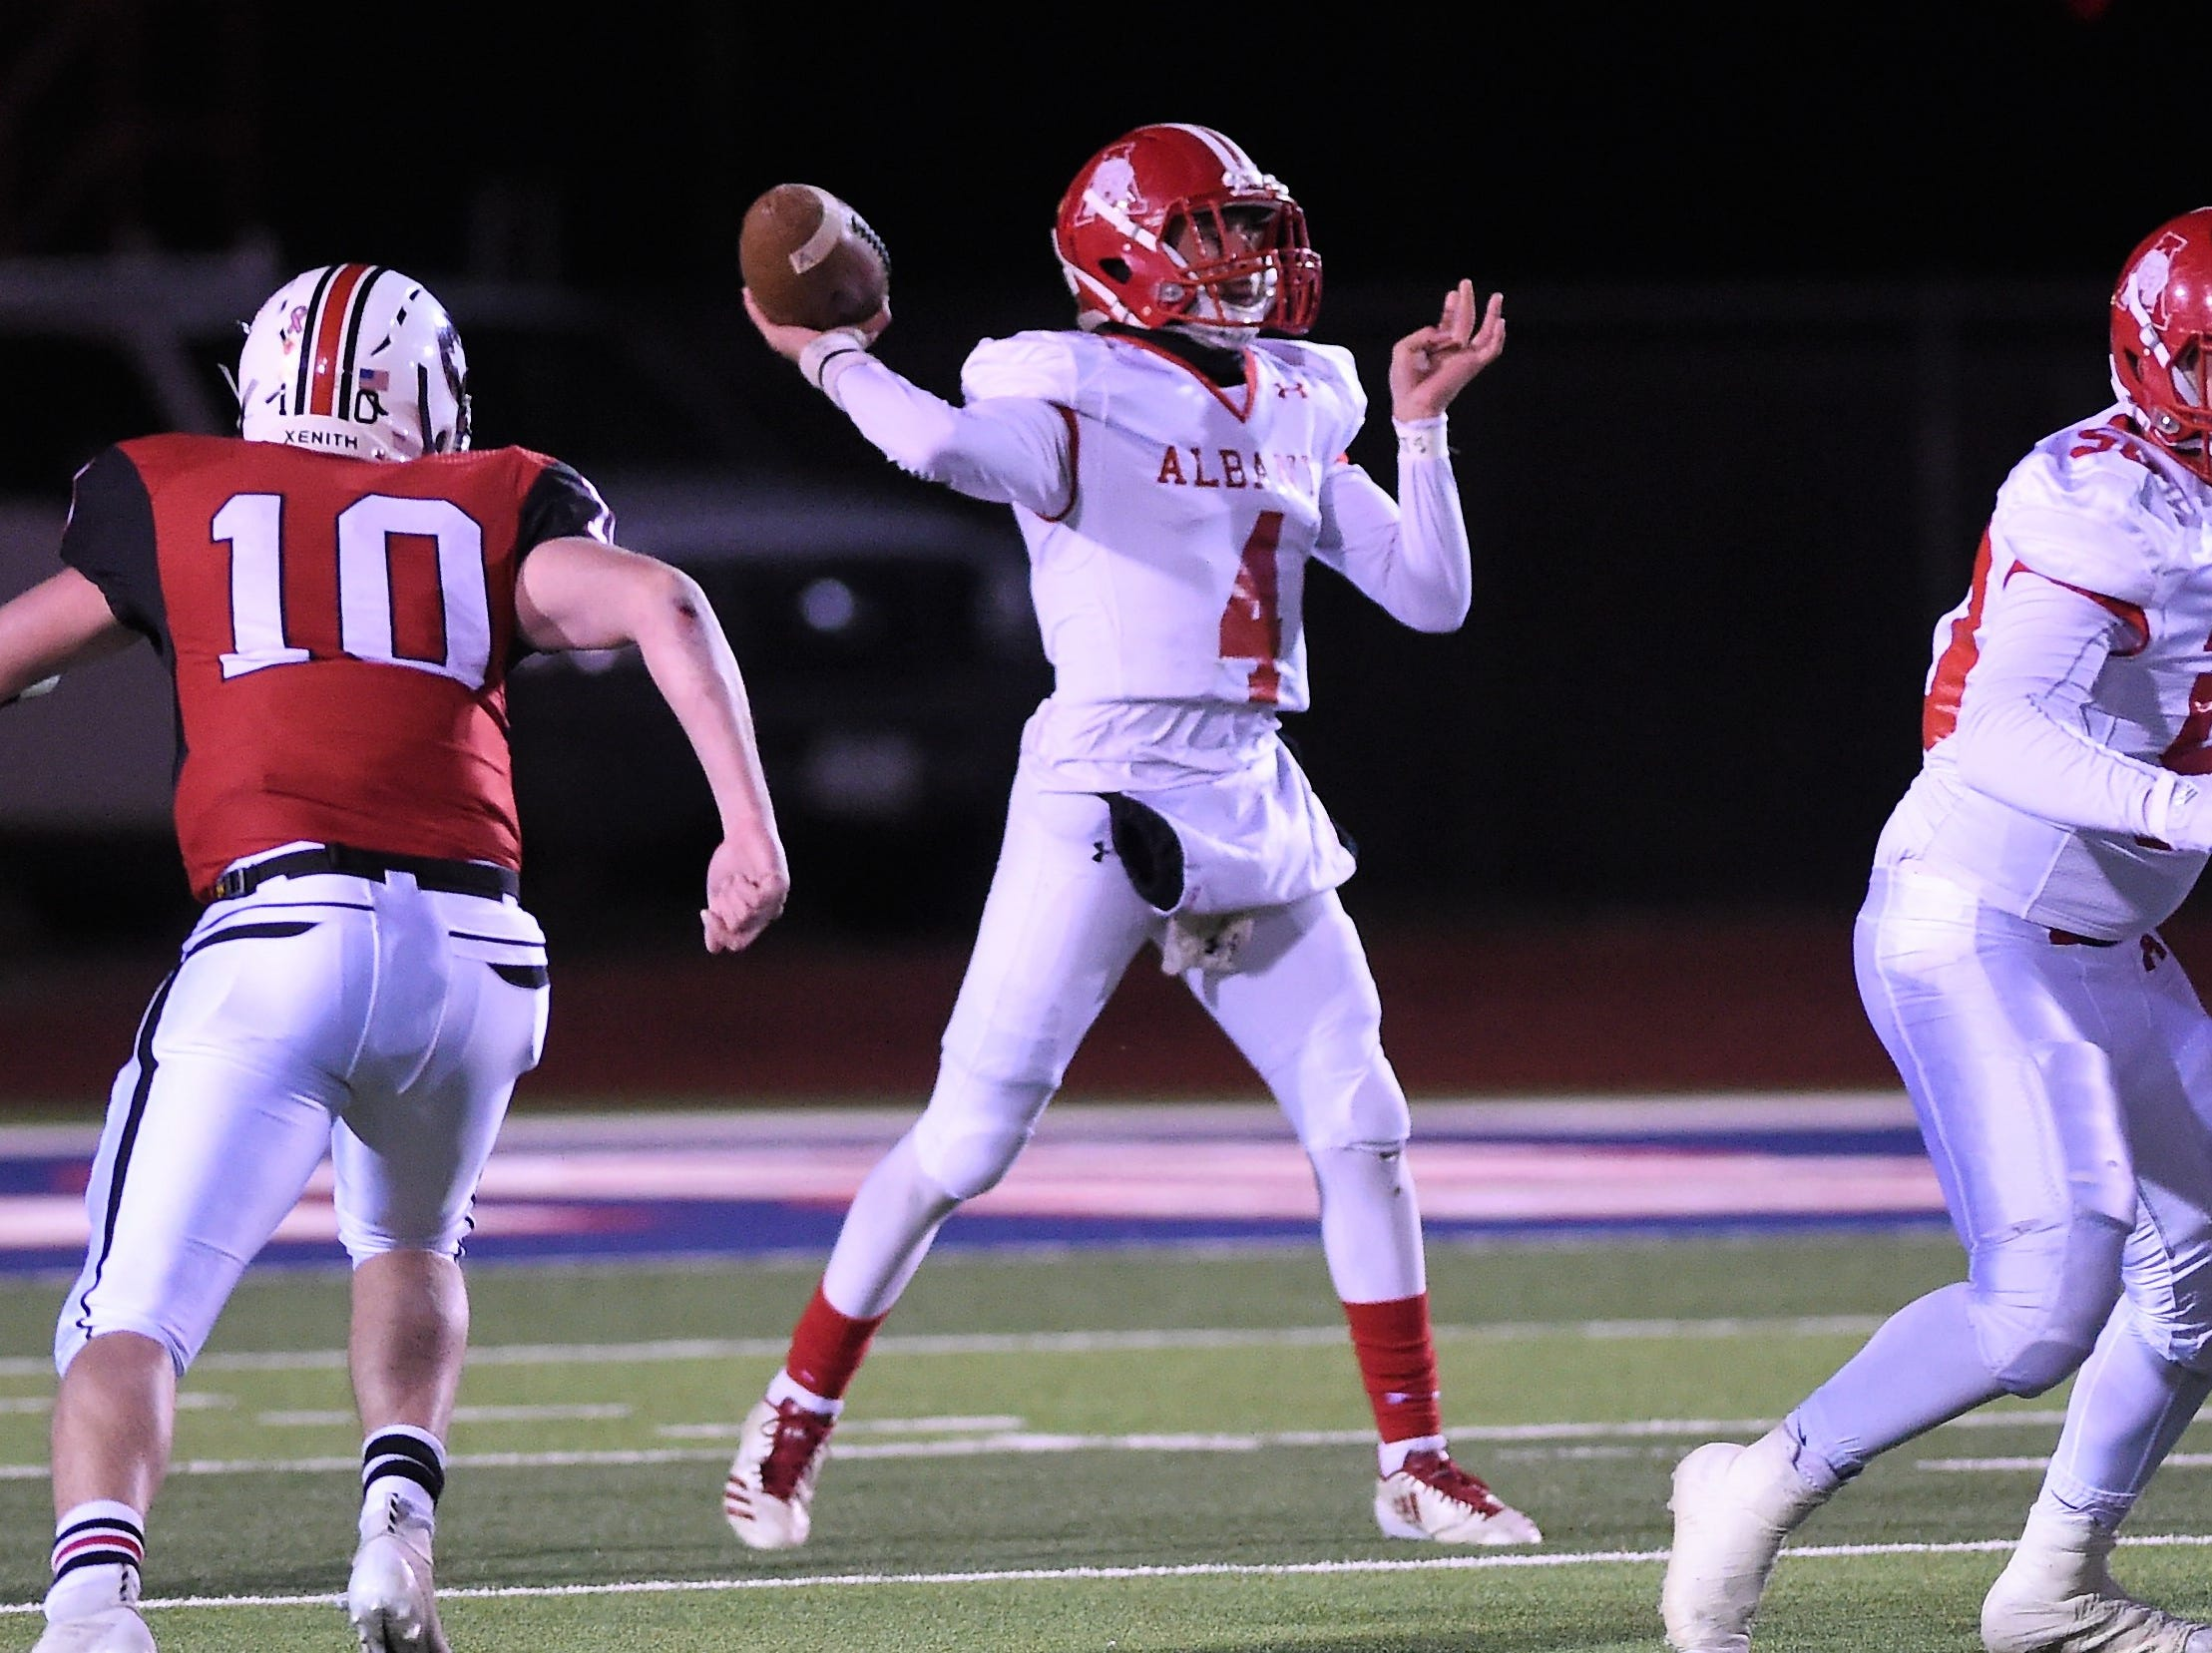 Albany quarterback Ben West (4) sets to throw a pass against Gruver in the Class 2A Division II state semifinal at Sherwood Memorial Bulldog Stadium in Plainview on Thursday, Dec. 13, 2018.